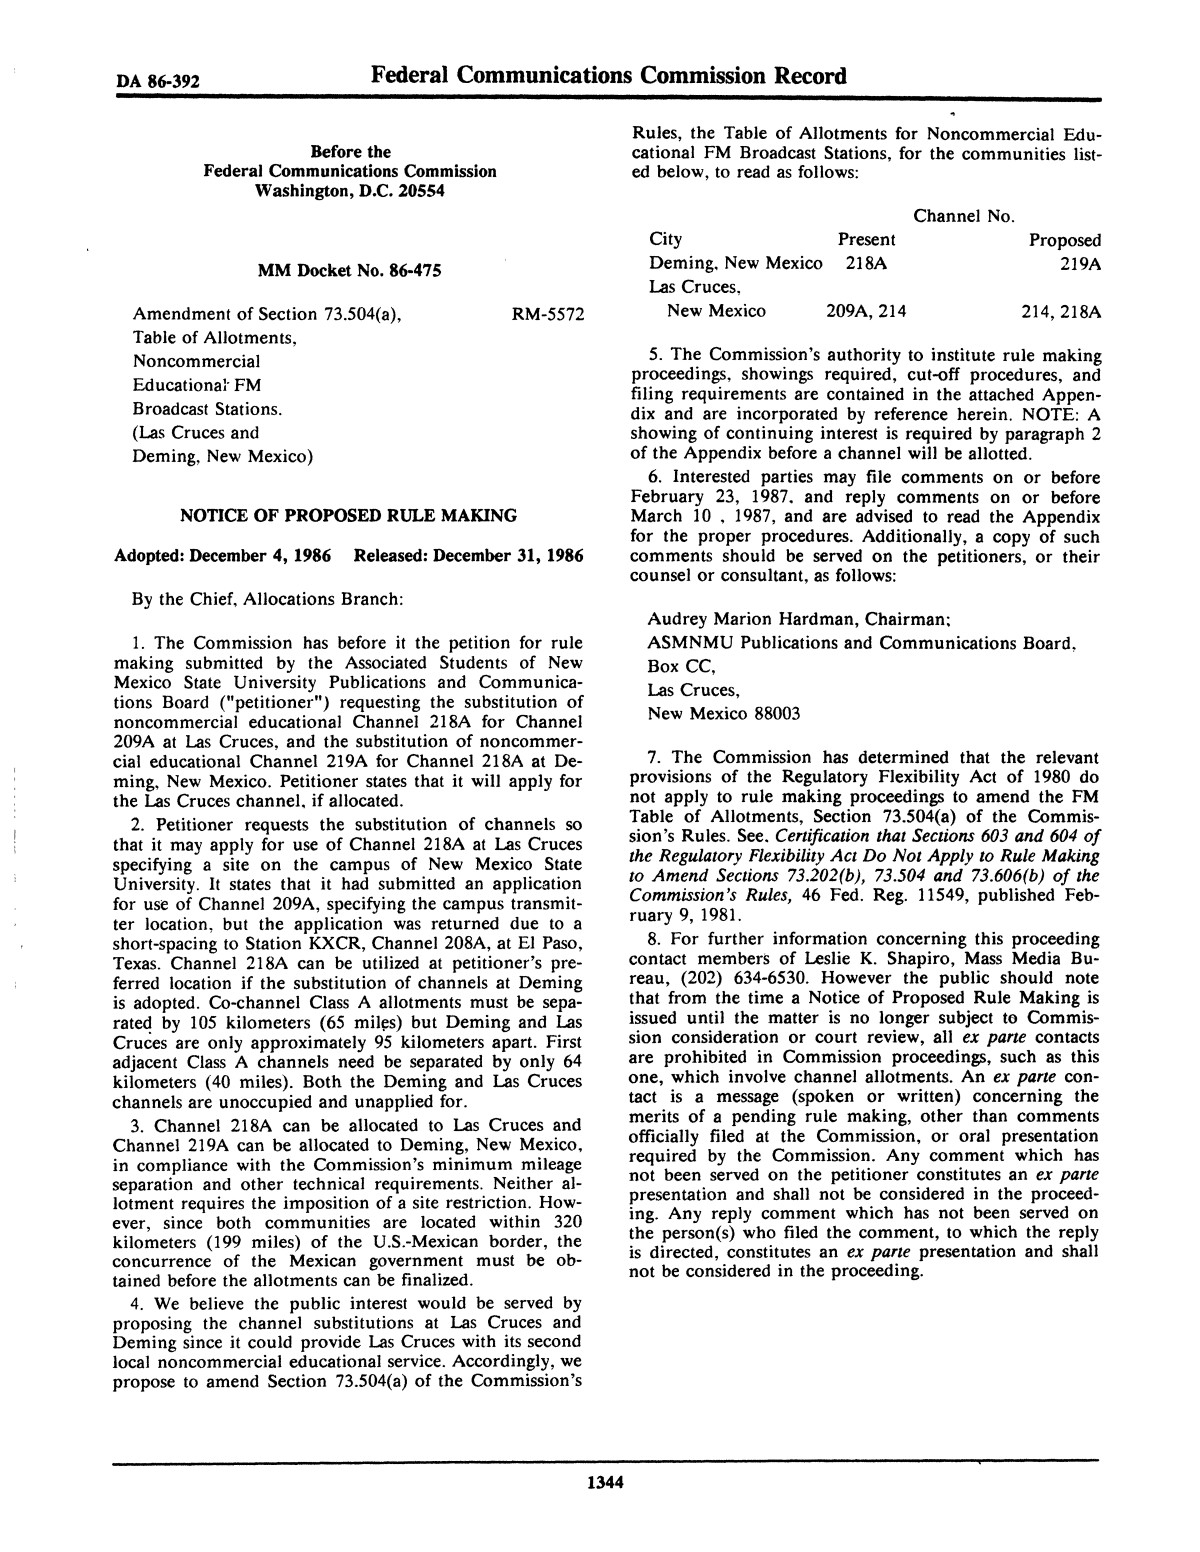 FCC Record, Volume 1, No. 7, Pages 1267 to 1368, December 22, 1986 - January 2, 1987                                                                                                      1344